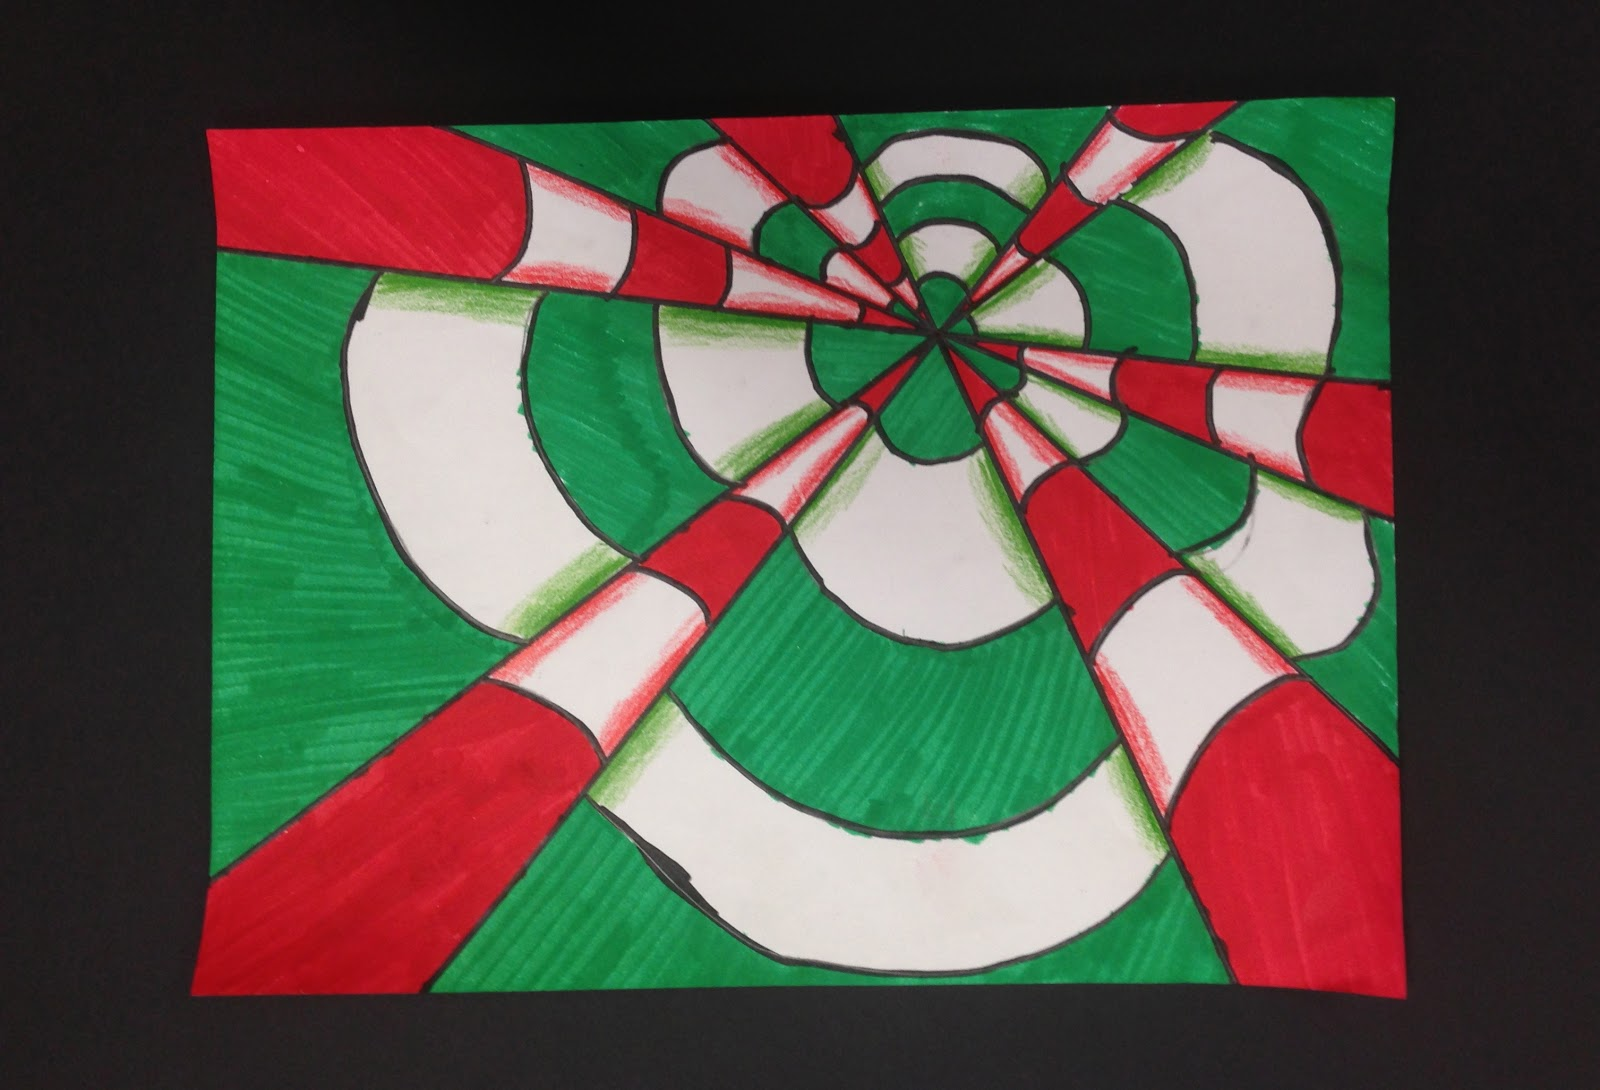 Op art uses color to create - Short For Optical Art This Movement S Main Purpose Is To Use Line And Color Often Black And White To Create